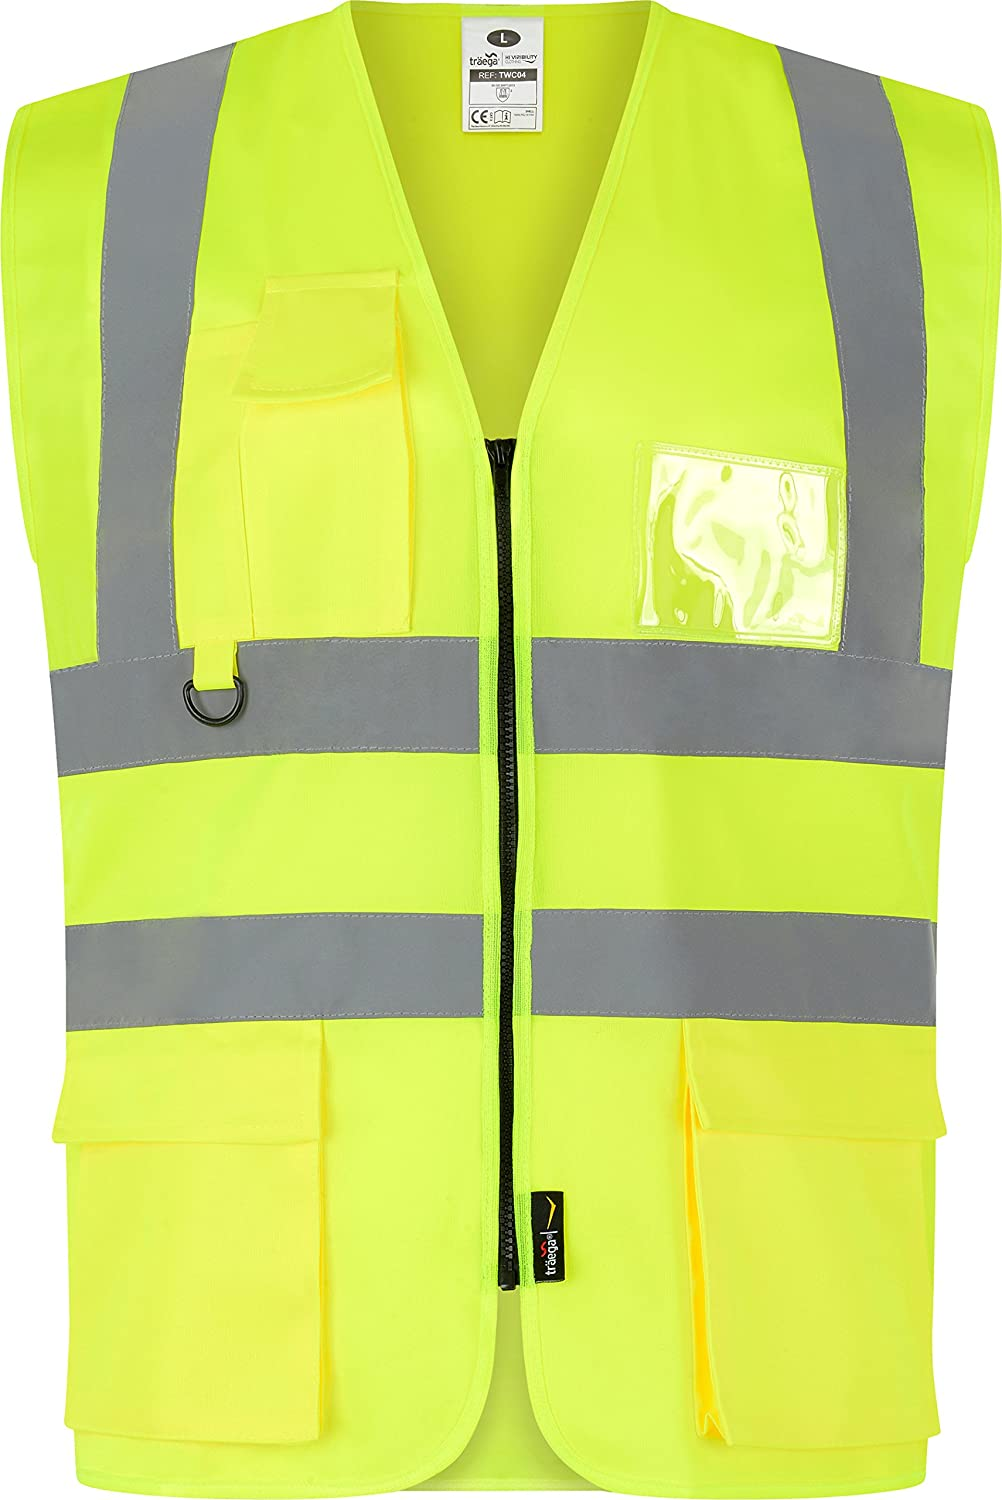 XL 46-48 Chest Zipped Yellow Safety Vest X 1 All Sizes Quality Yellow Hi Vis Executive Zip Up Vest